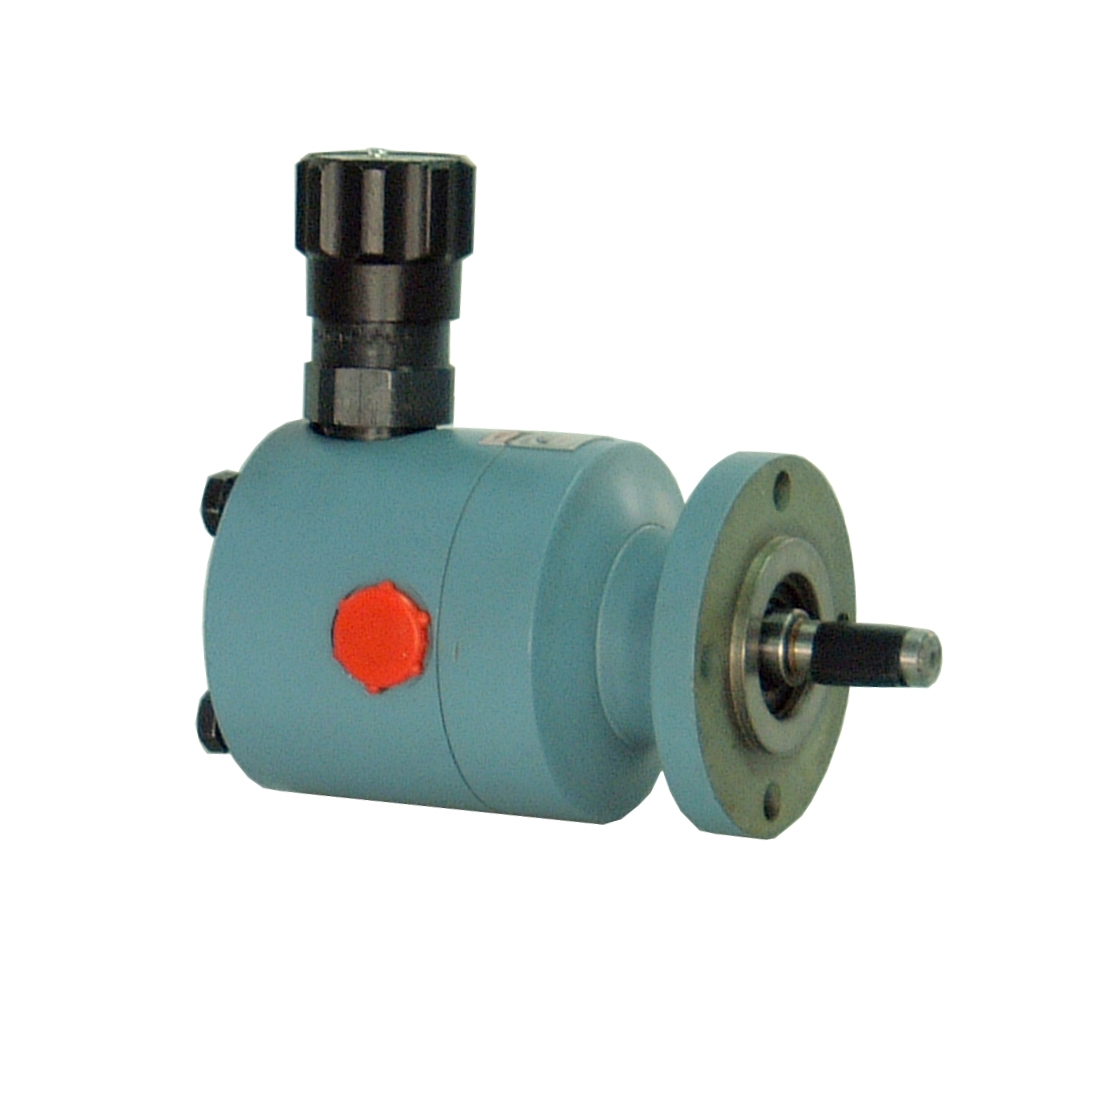 pump with inbuilt relief valve and flange mounted